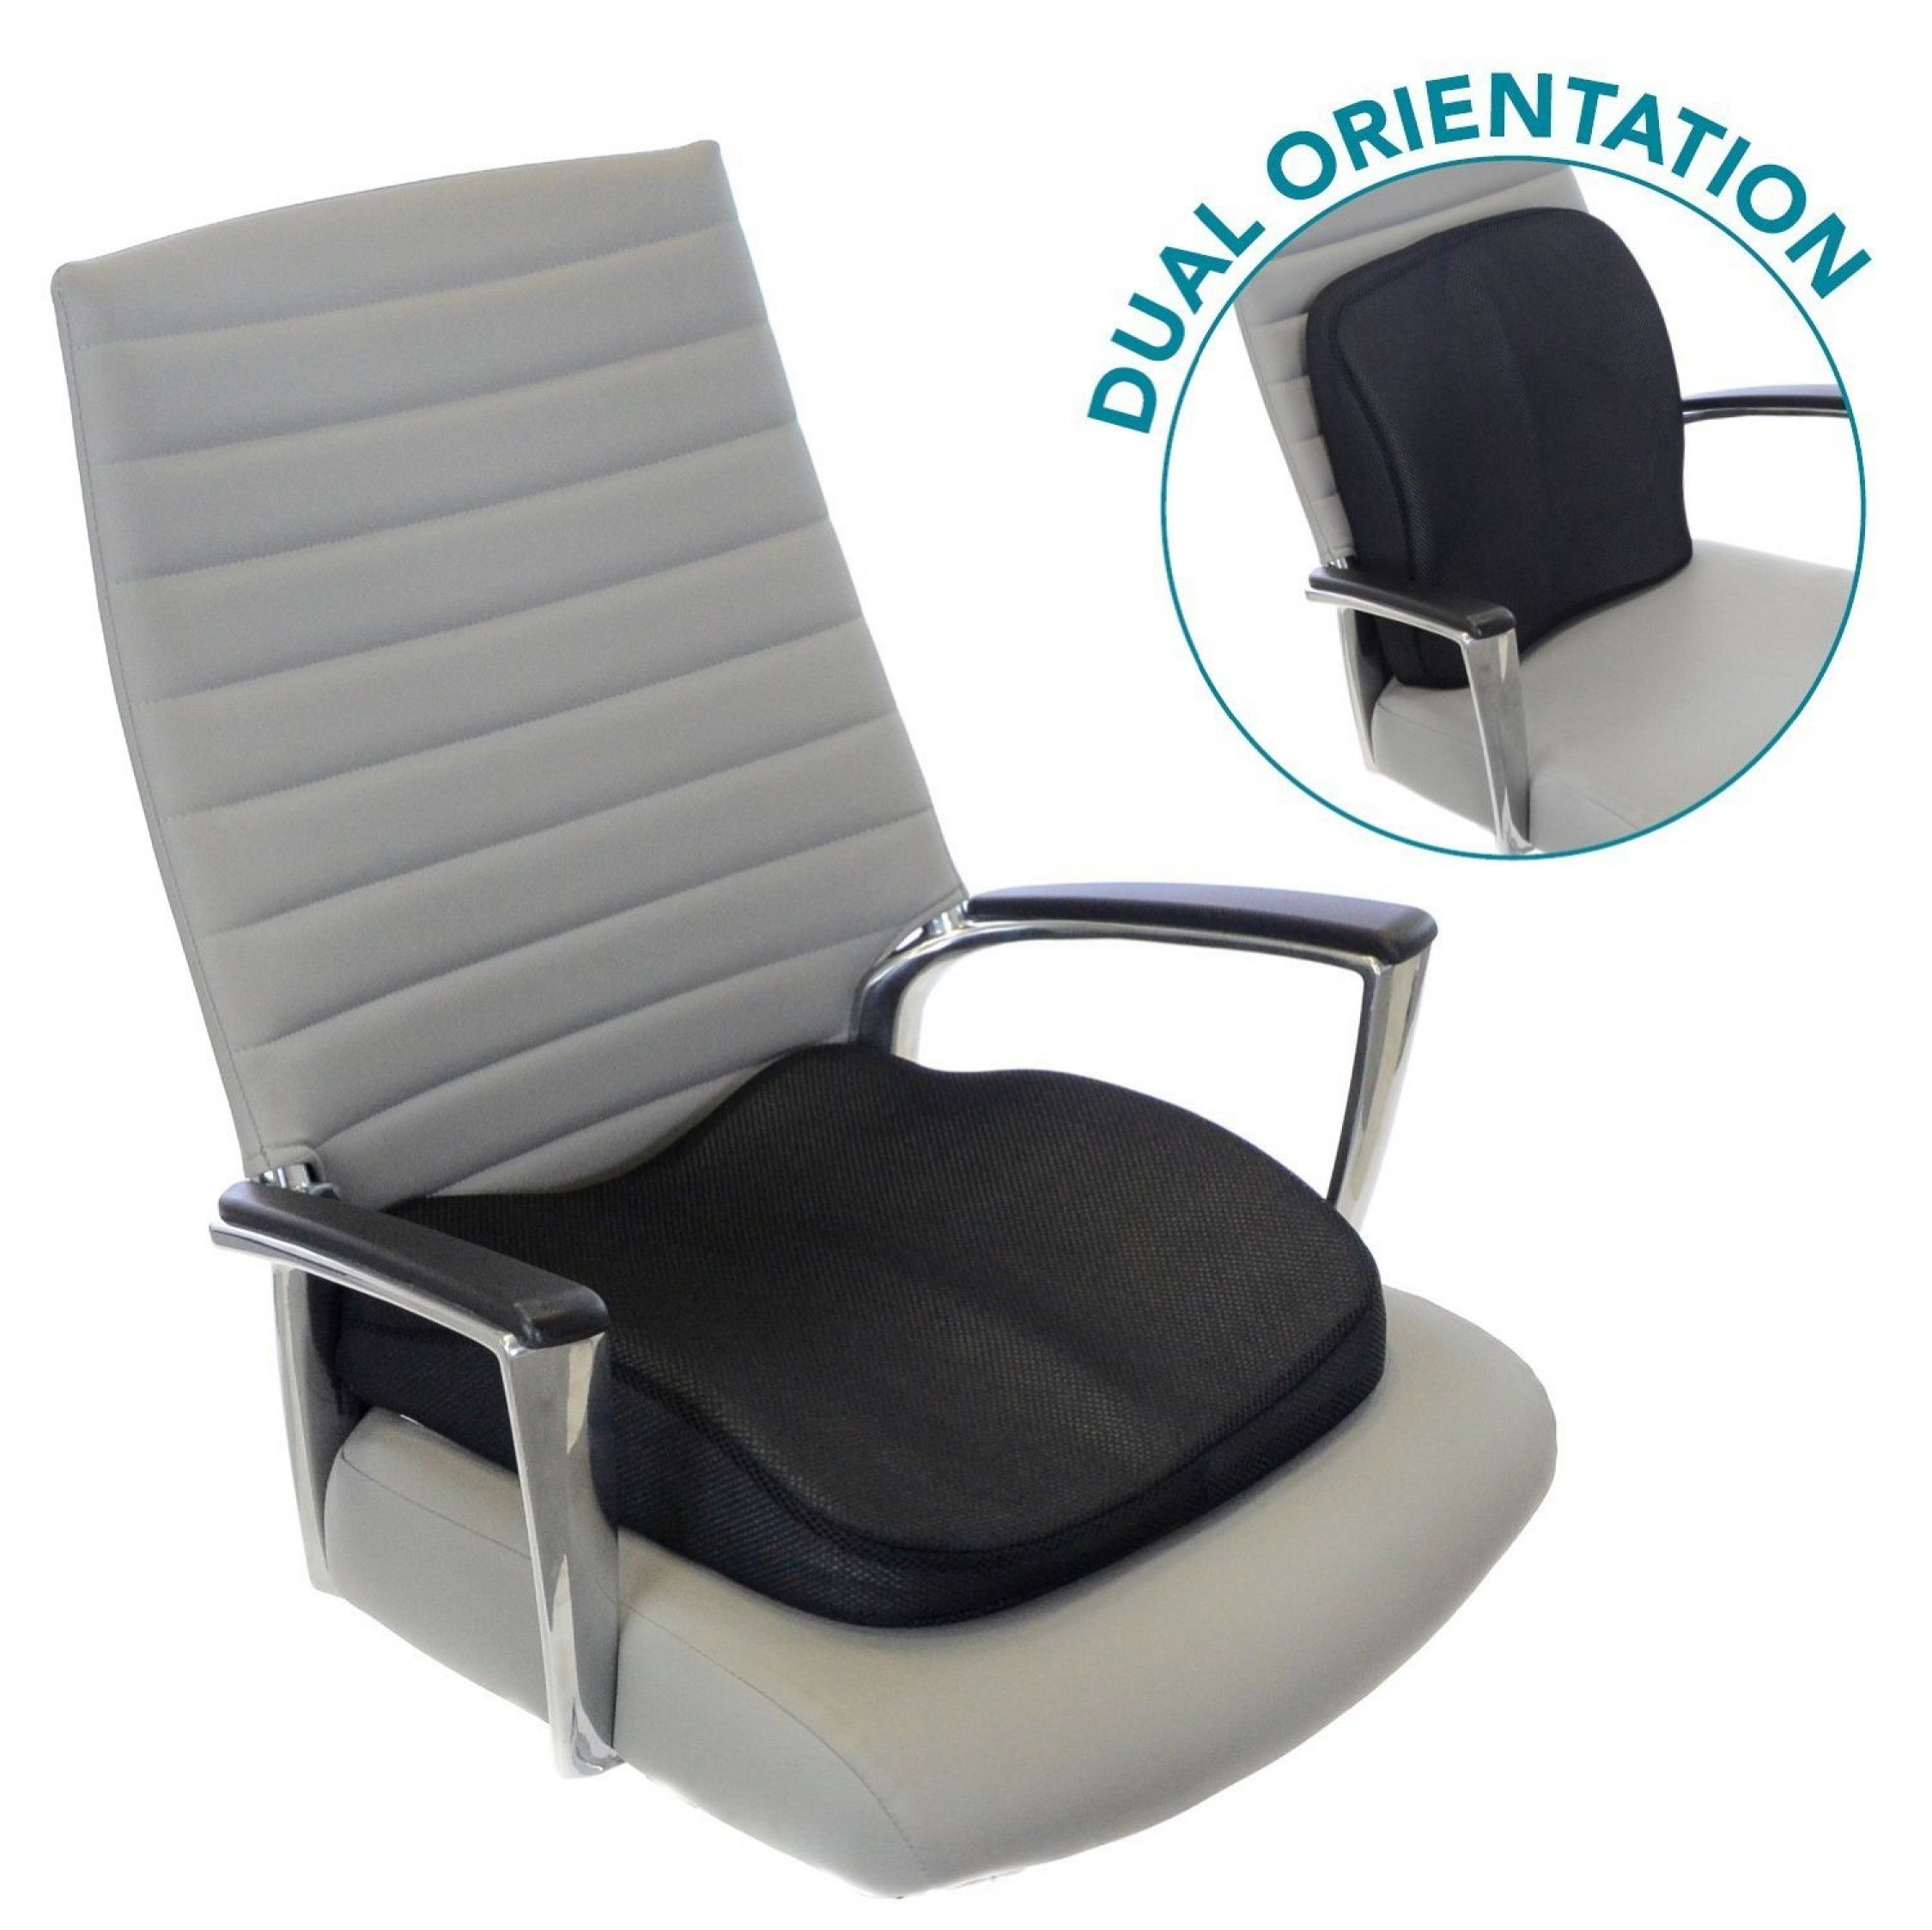 Lower Back Support Cushion For Office Chair